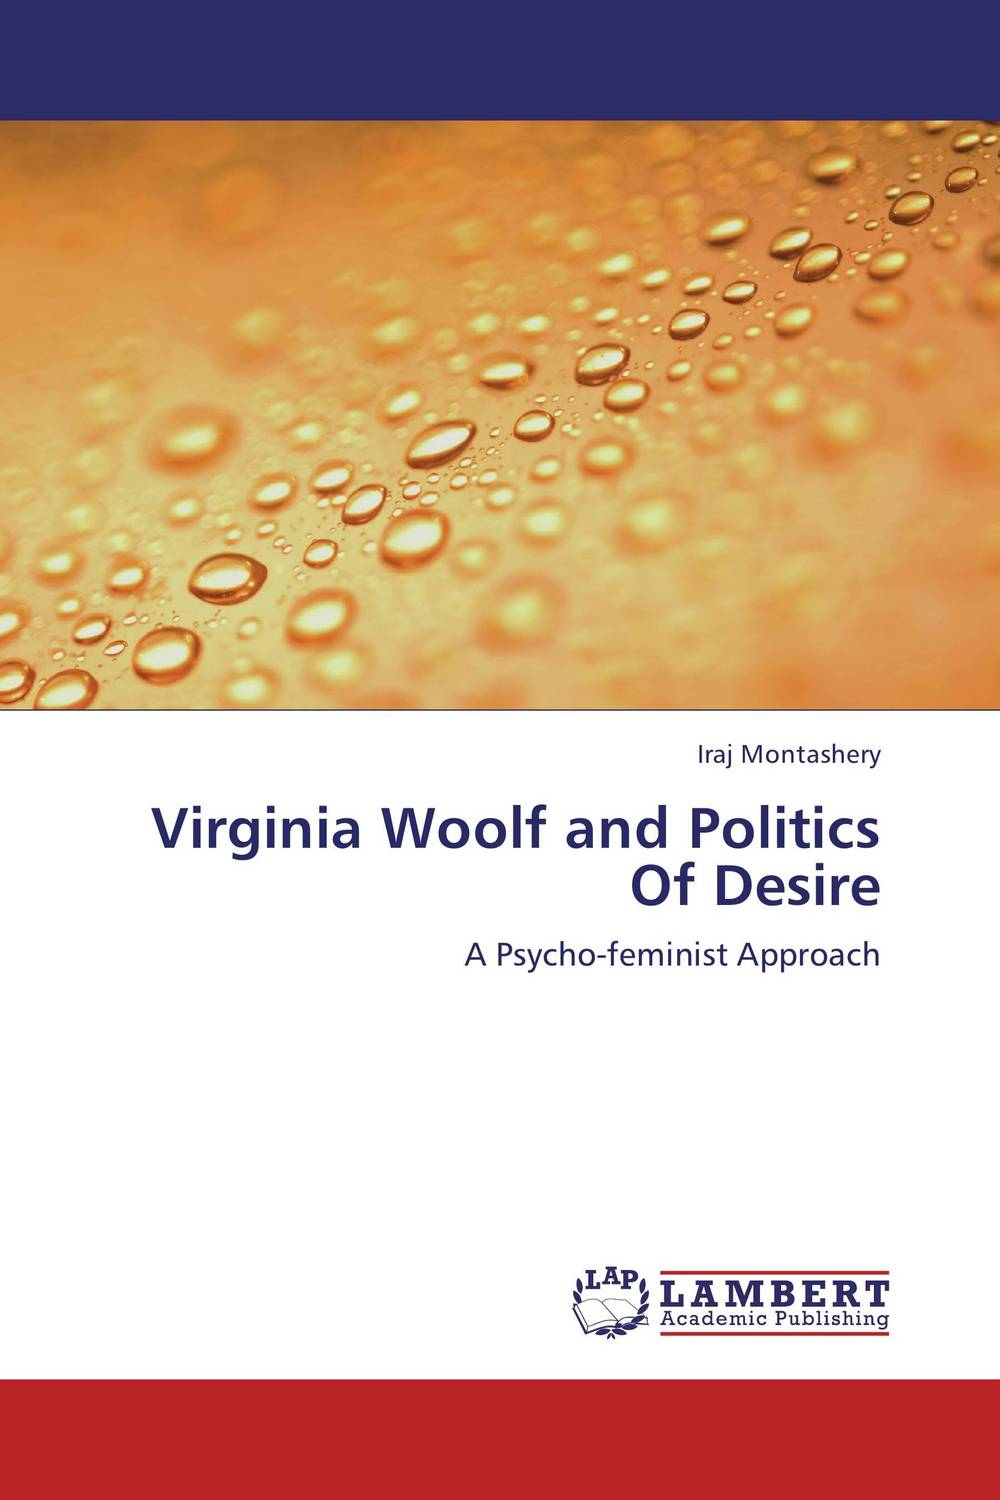 Virginia Woolf and Politics Of Desire duncan bruce the dream cafe lessons in the art of radical innovation